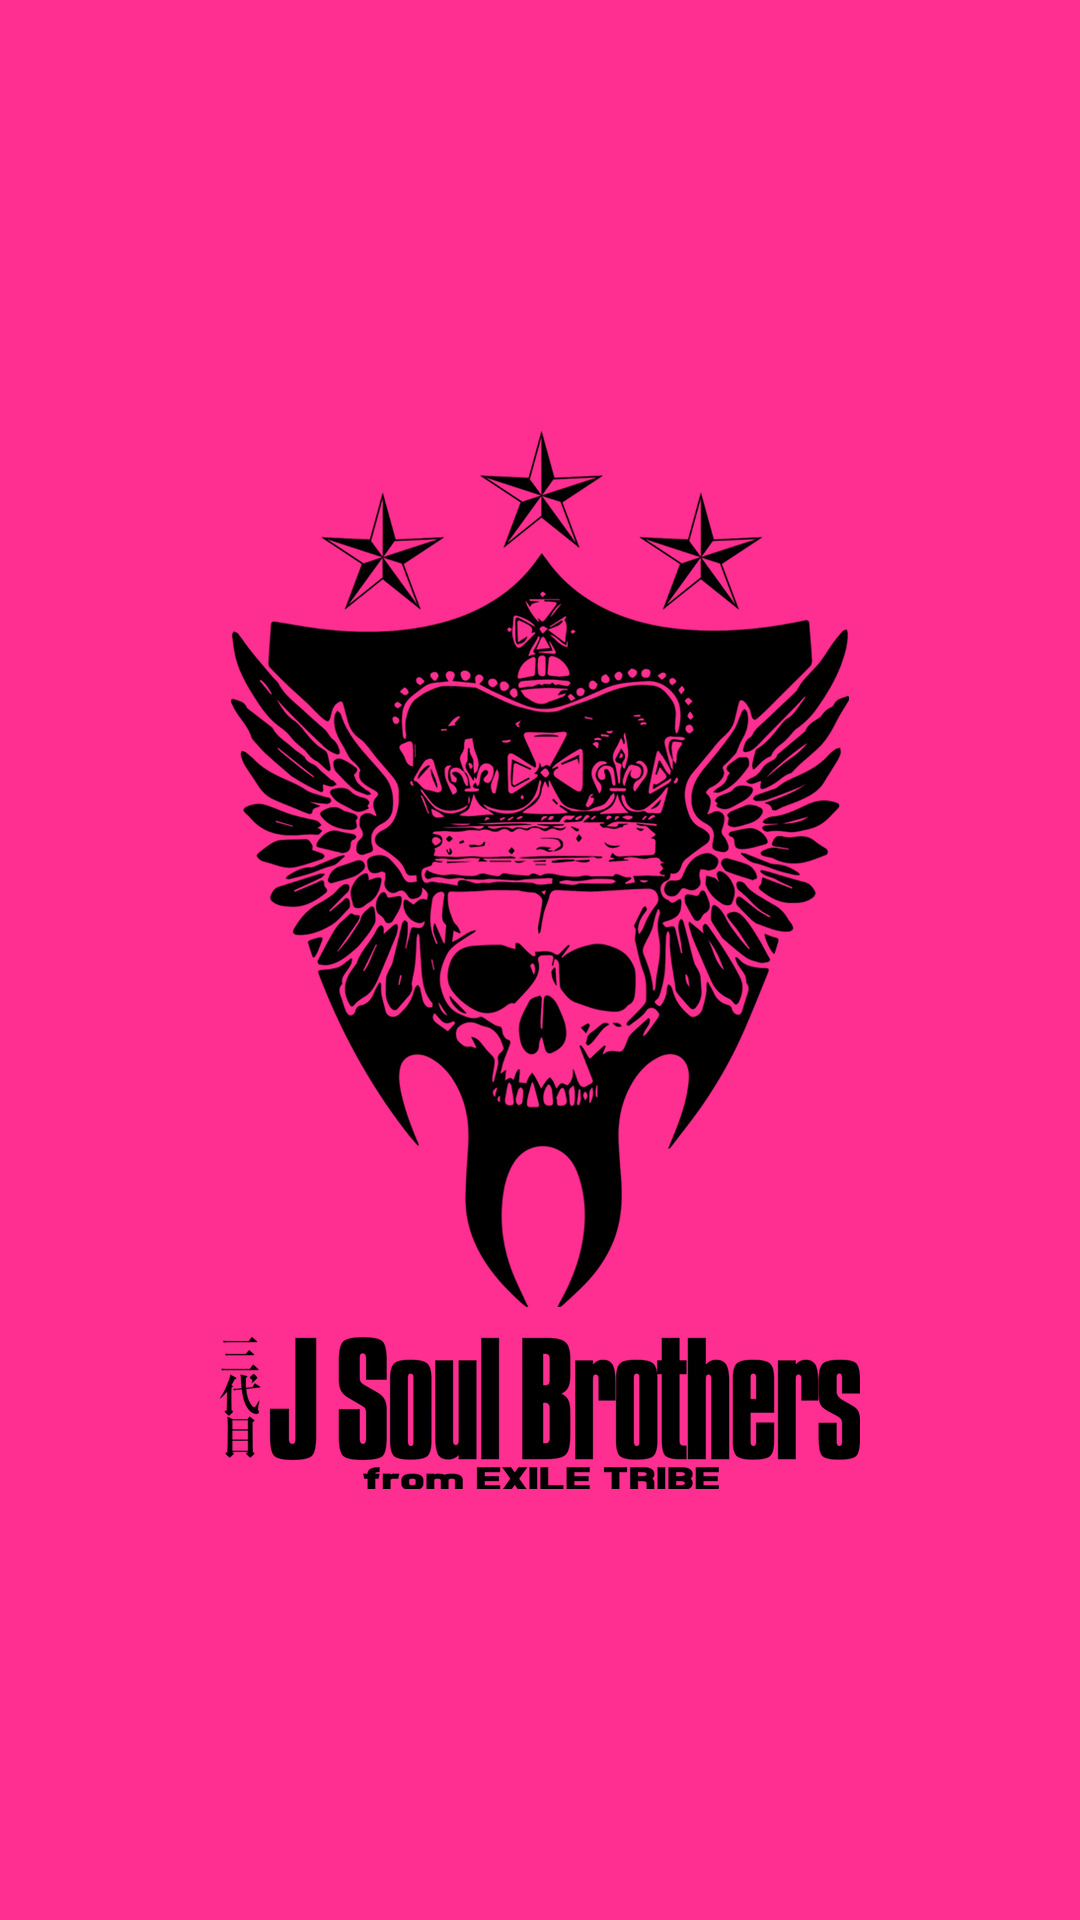 3jsb i05 - 三代目 J SOUL BROTHERSの高画質スマホ壁紙40枚 [iPhone&Androidに対応]